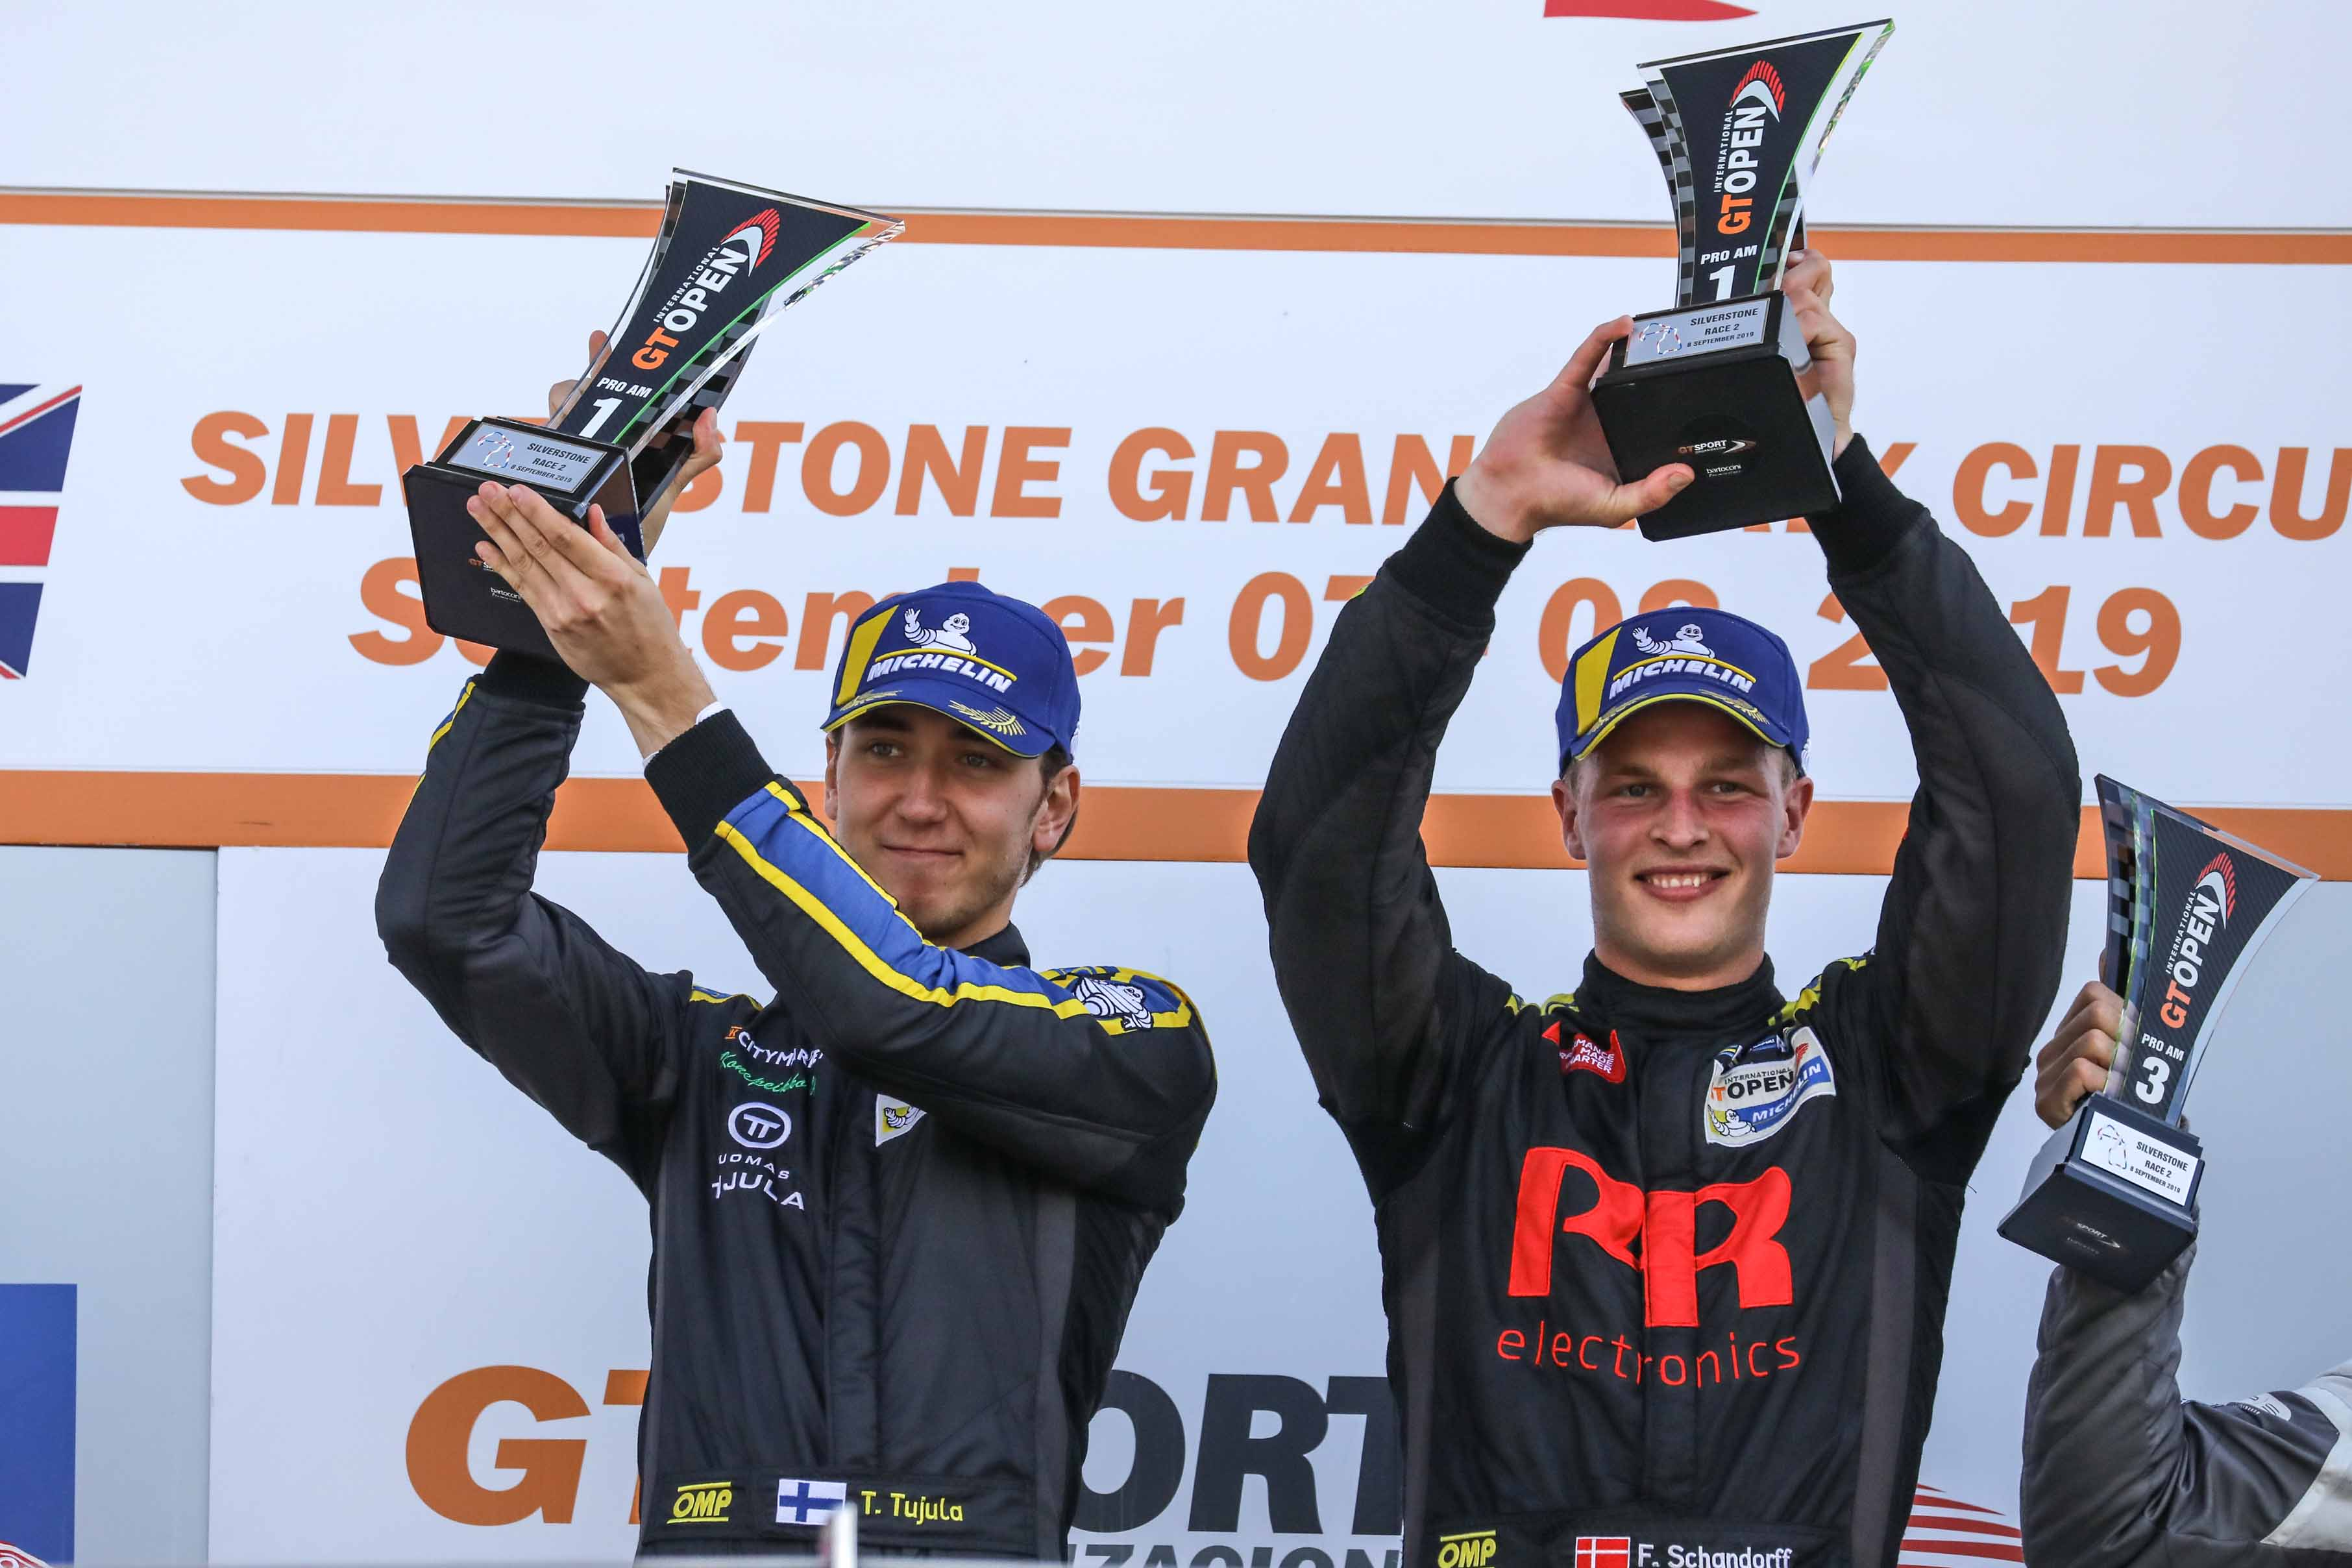 SCHANDORFF AND TUJULA WIN AGAIN AT SILVERSTONE